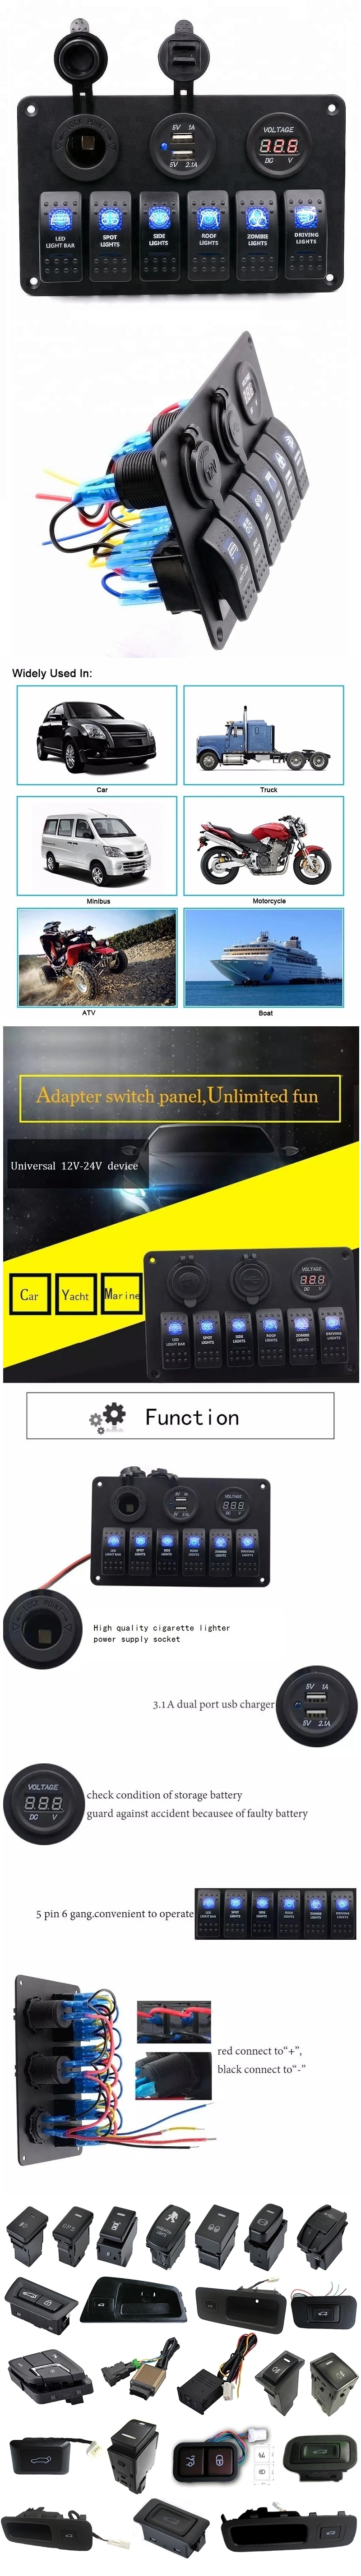 Customize Waterproof 6 Gang LED Display Auto Marine Boat Car Rocker Switch With Dual USB And Power Socket